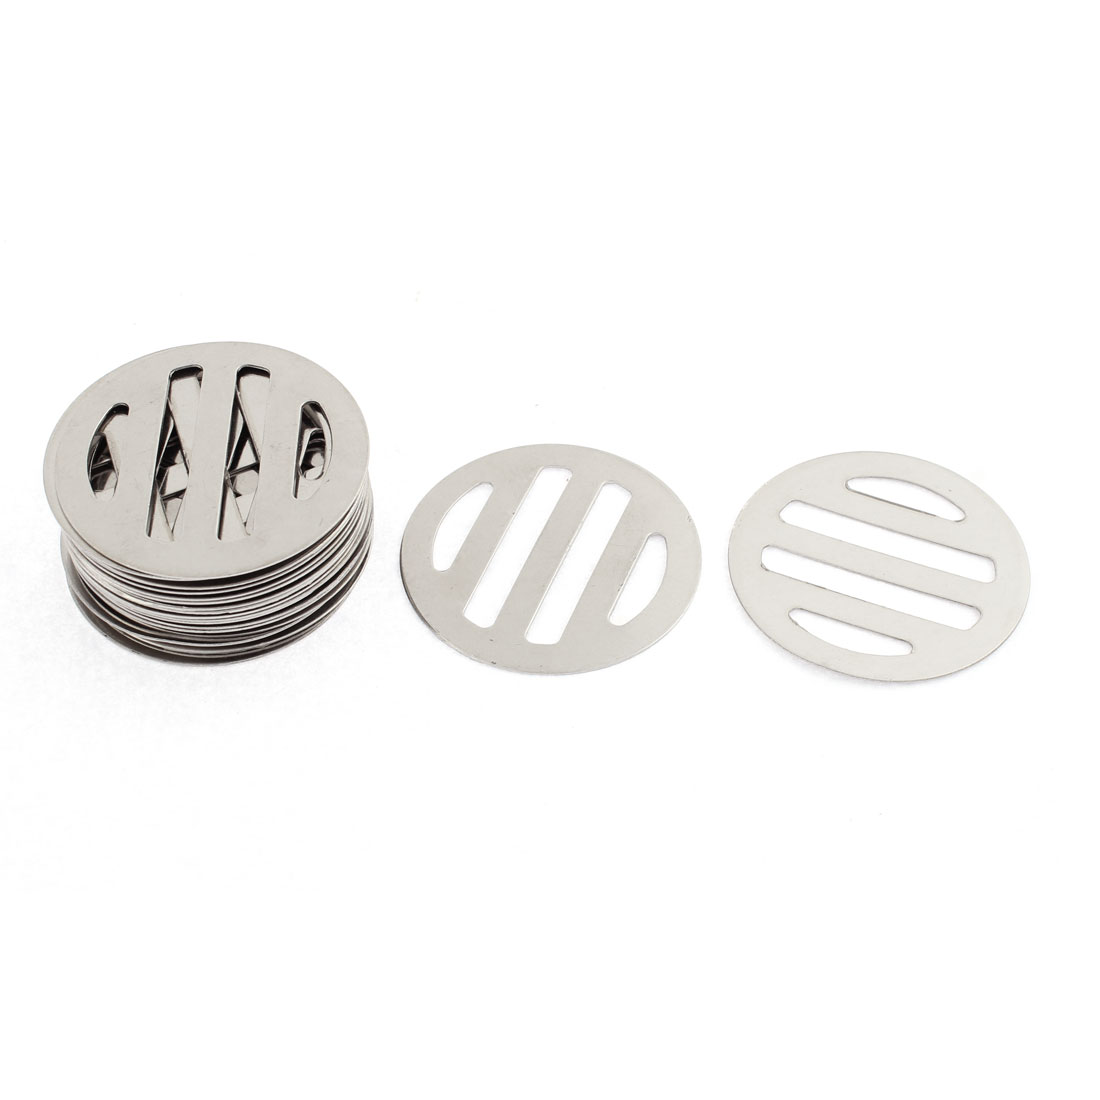 Stainless Steel Round Sink Floor Drain Strainer Cover 2 Inch Dia 20pcs